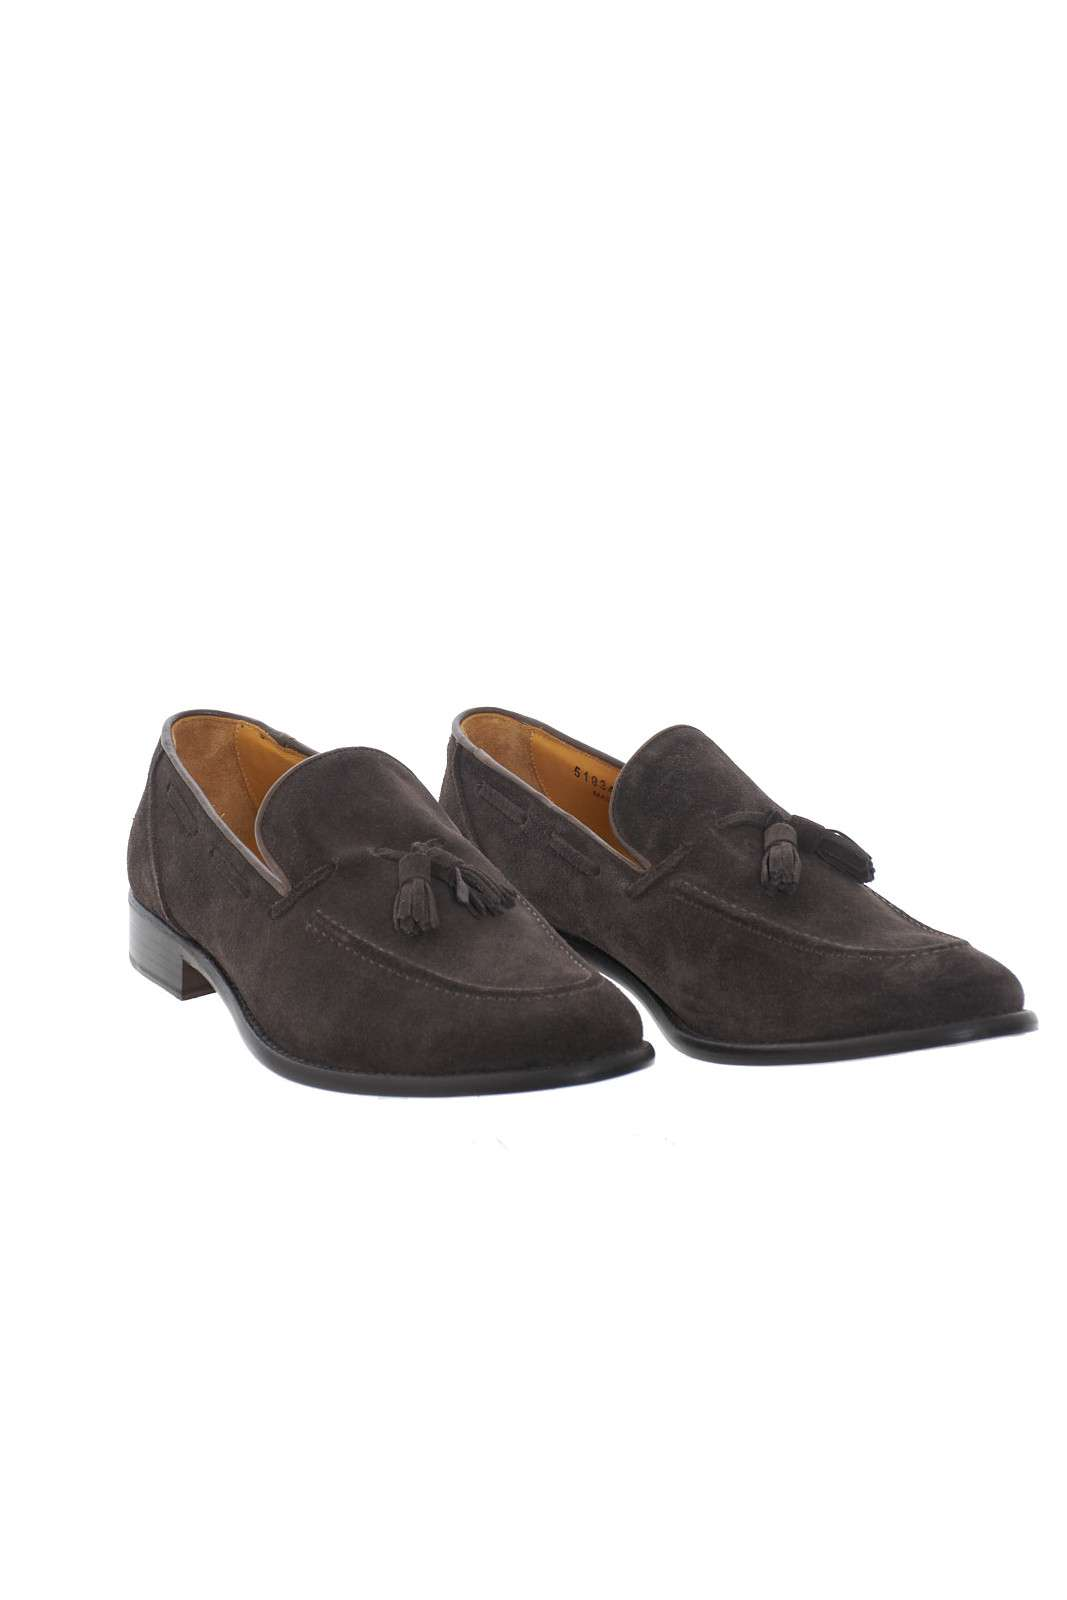 https://www.parmax.com/media/catalog/product/a/i/AI-outlet_parmax-mocassini-uomo-Florsheim-51834-D.jpg